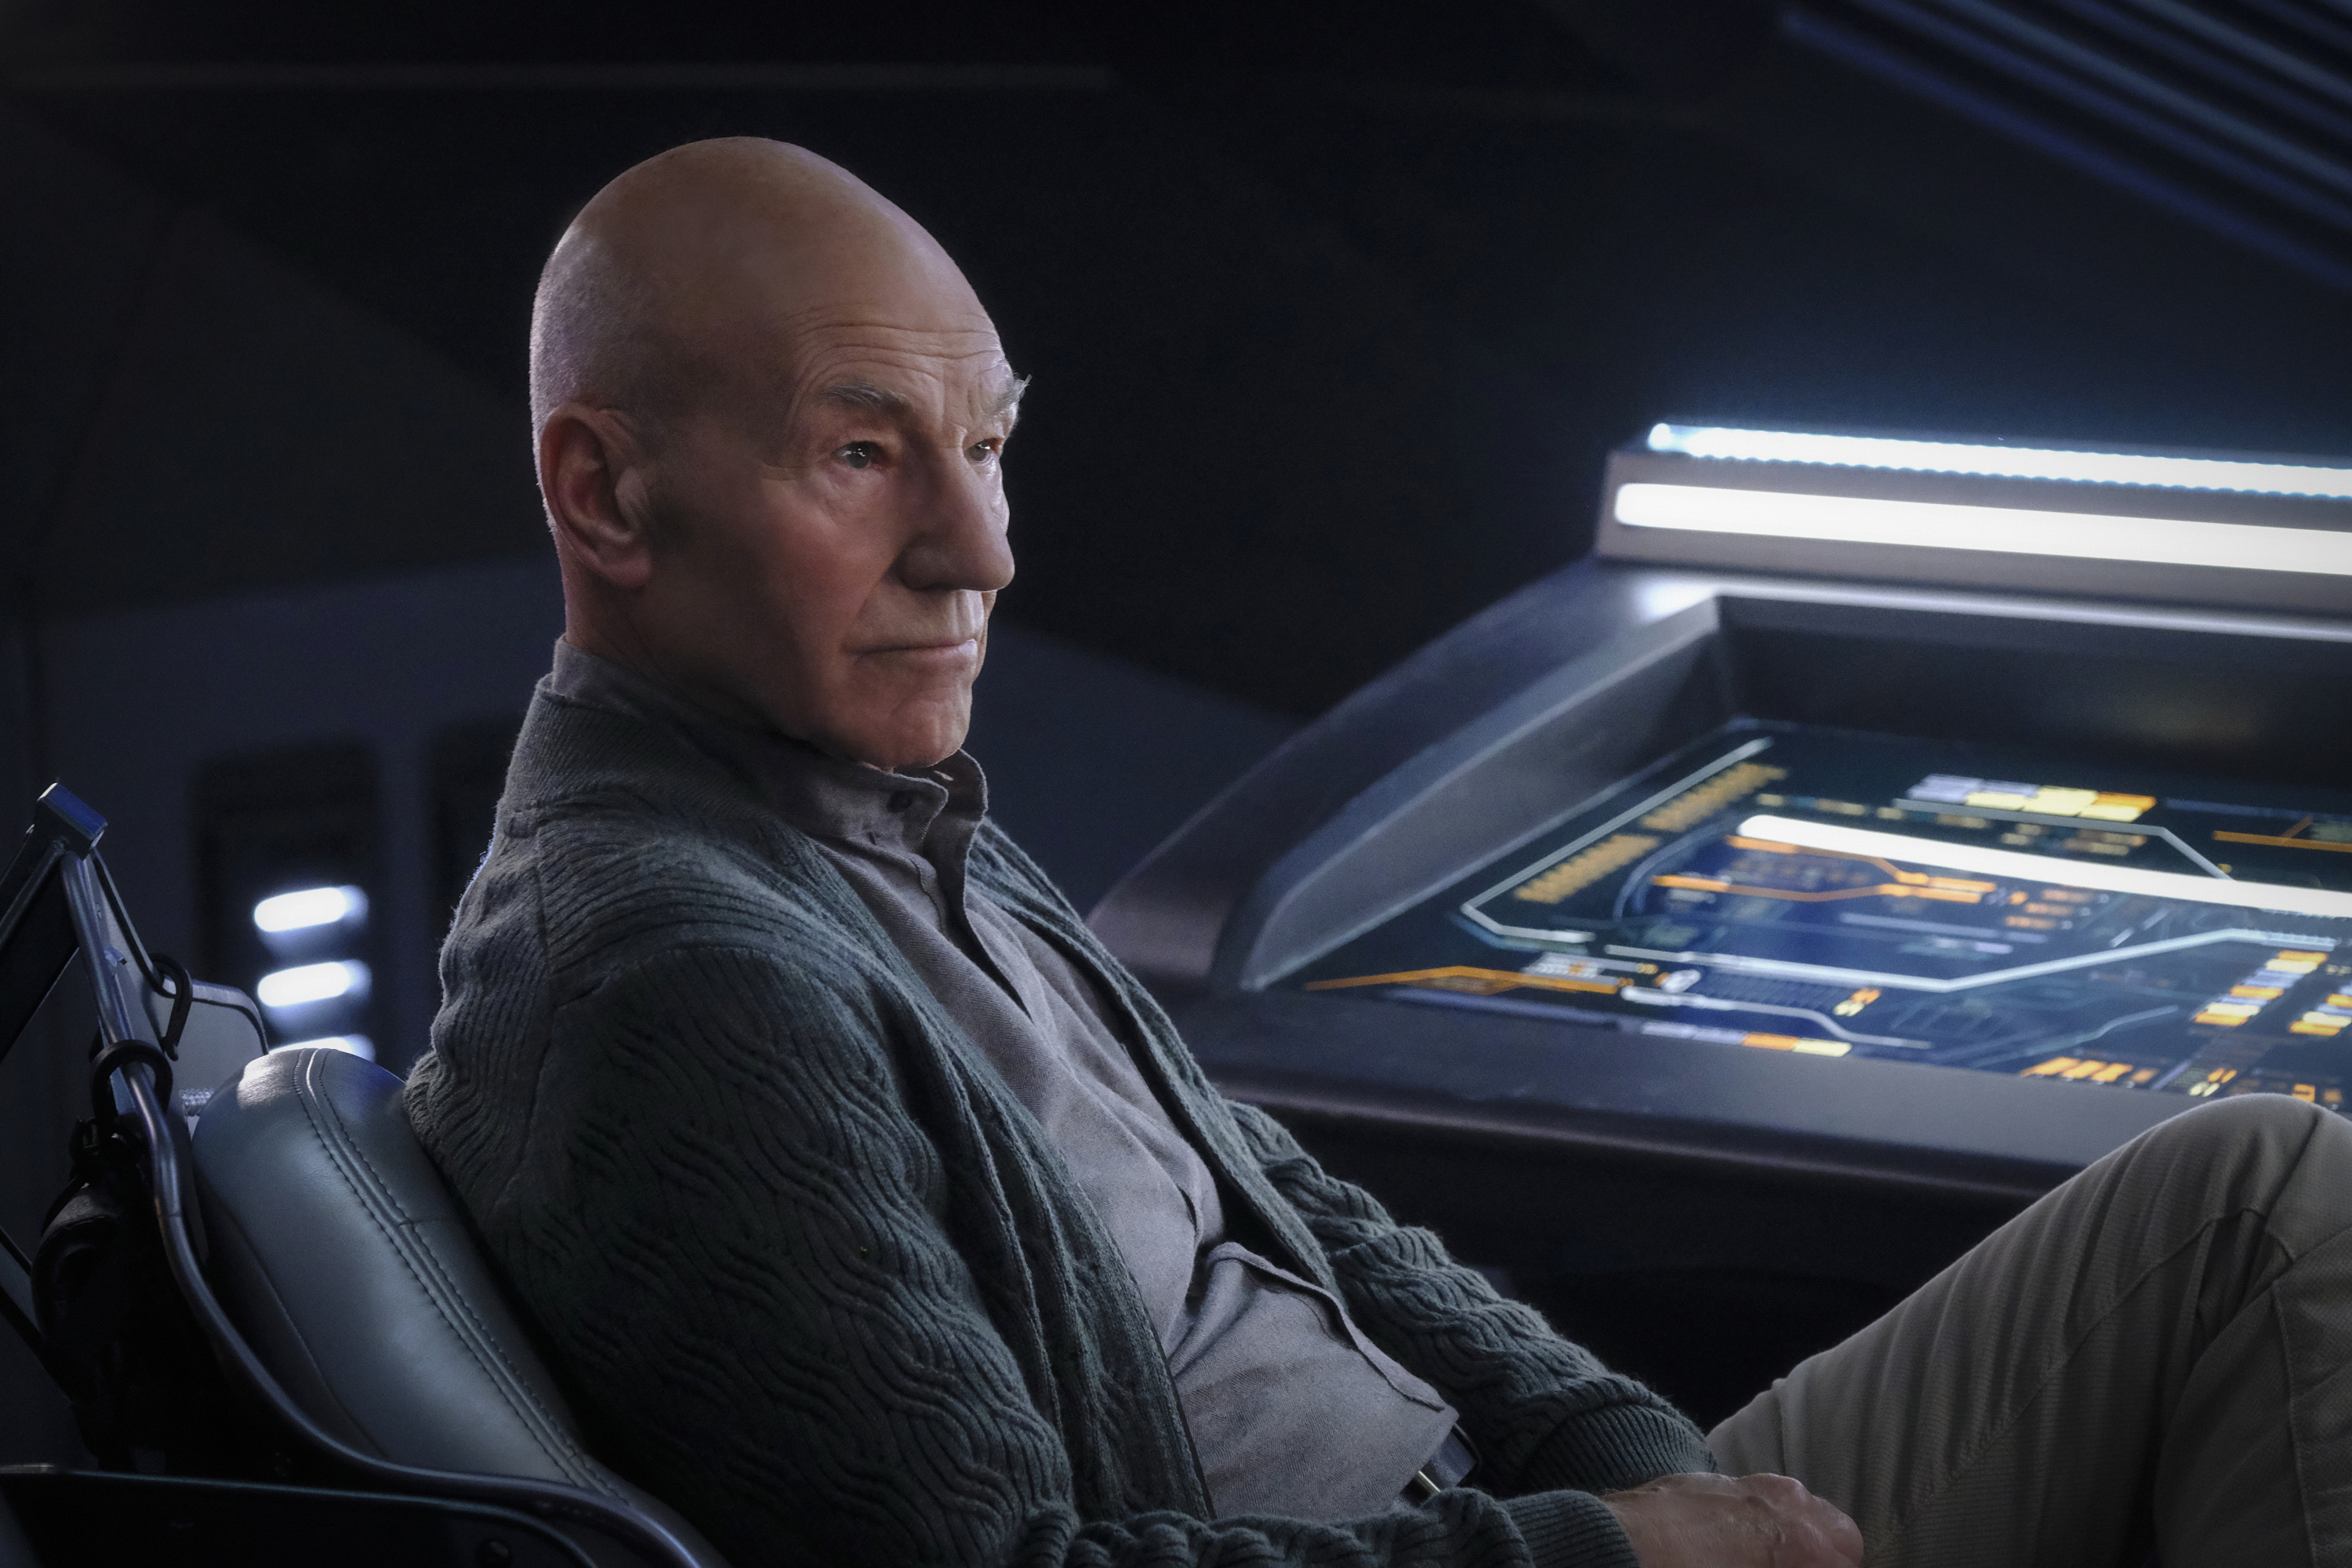 """Development of """"Picard"""" Season Two has continued throughout the lockdown, with Stewart taking Zoom meetings with the writers to hone the scripts and even several """"magnificent"""" sets having been built."""